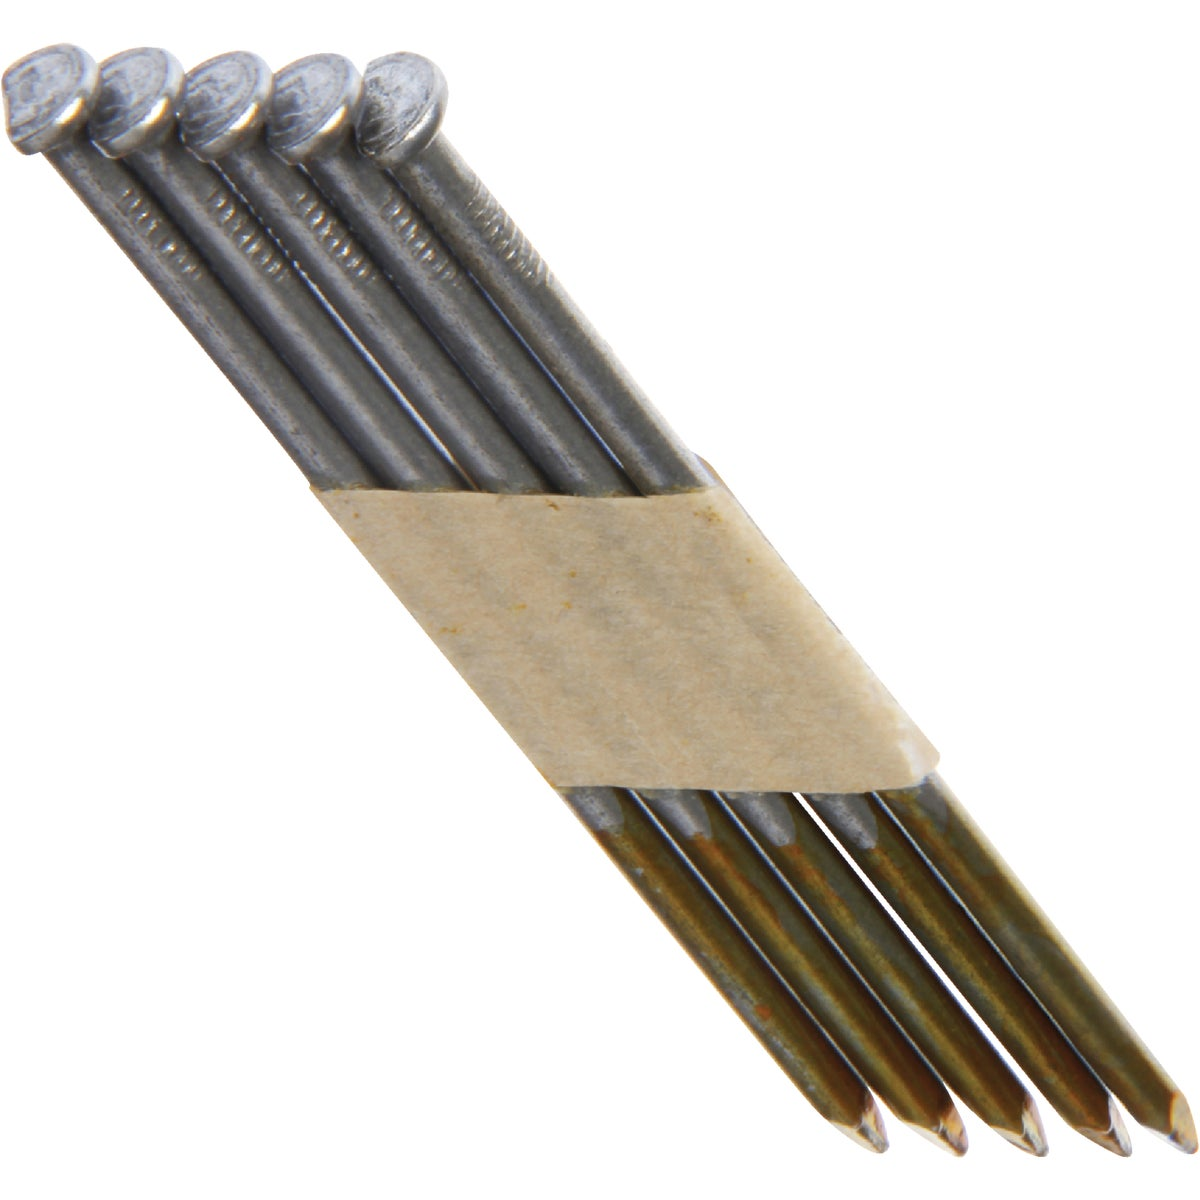 "3-1/2"" STICK NAIL - GRSP16DZ by Prime Source Pneumat"